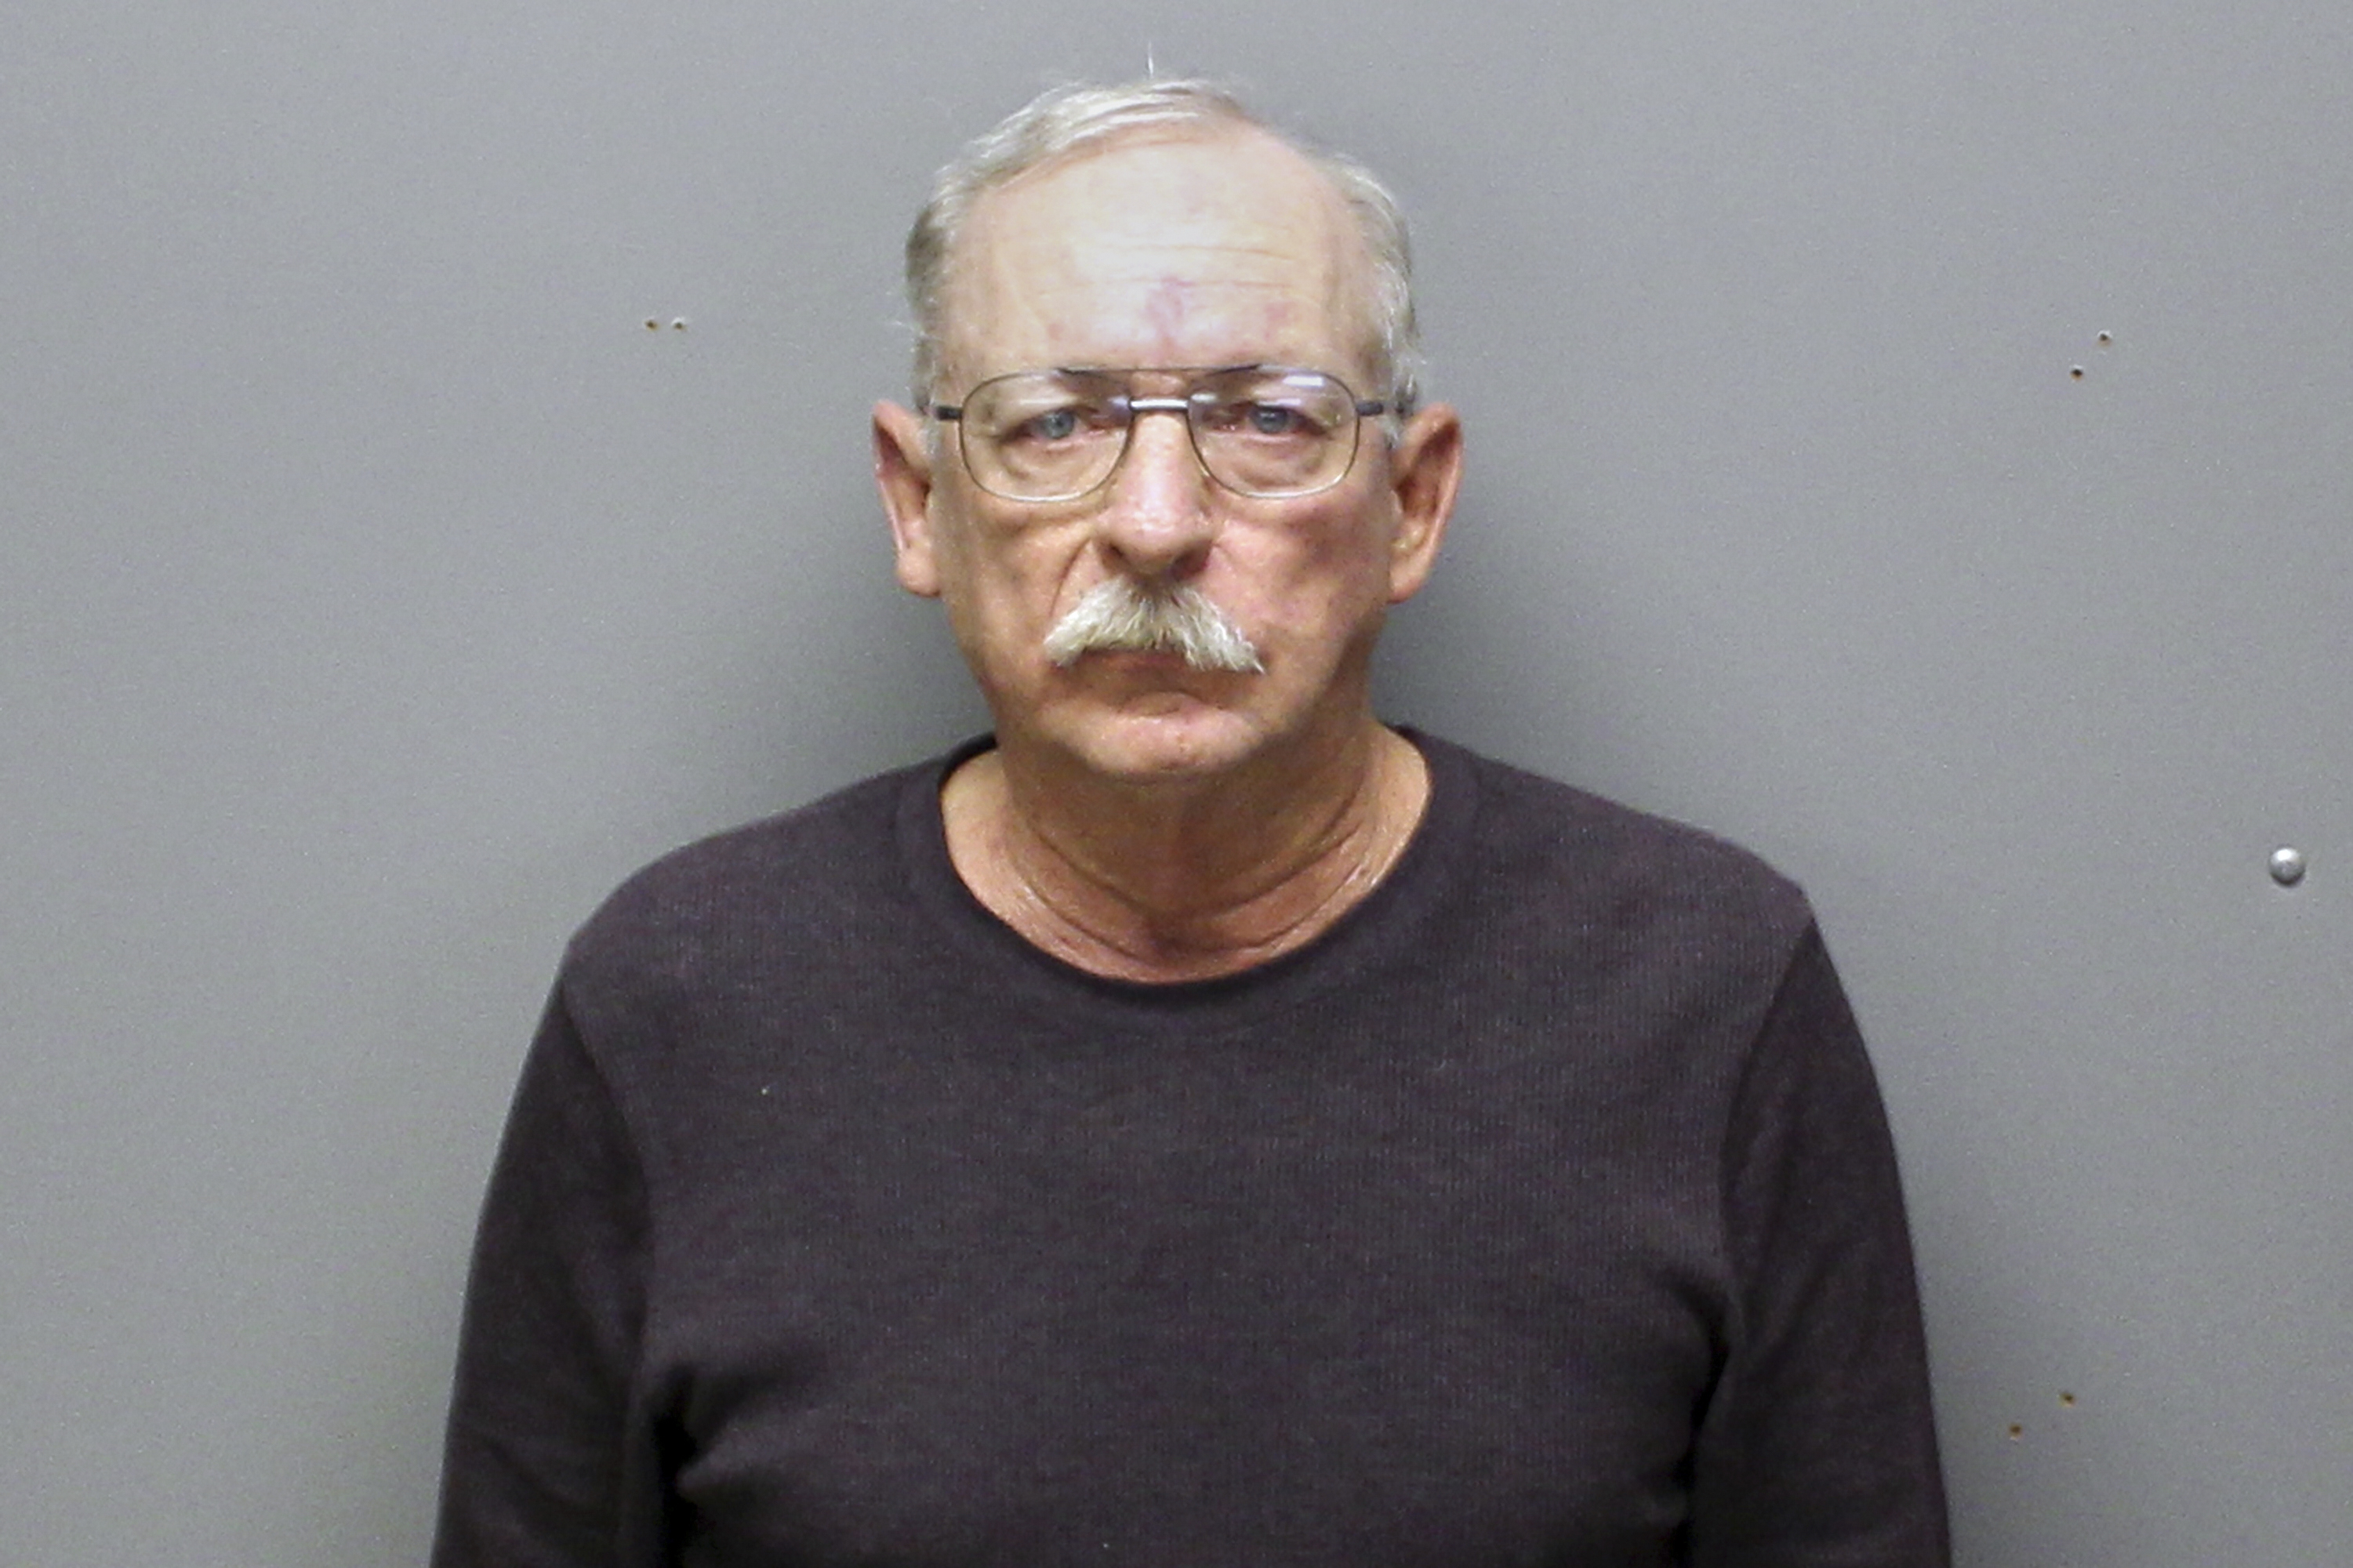 This Monday, Dec. 23, 2019 arrest photo provided by the Franklin County, Mo., Sheriff's Department shows Kirby King, 64.